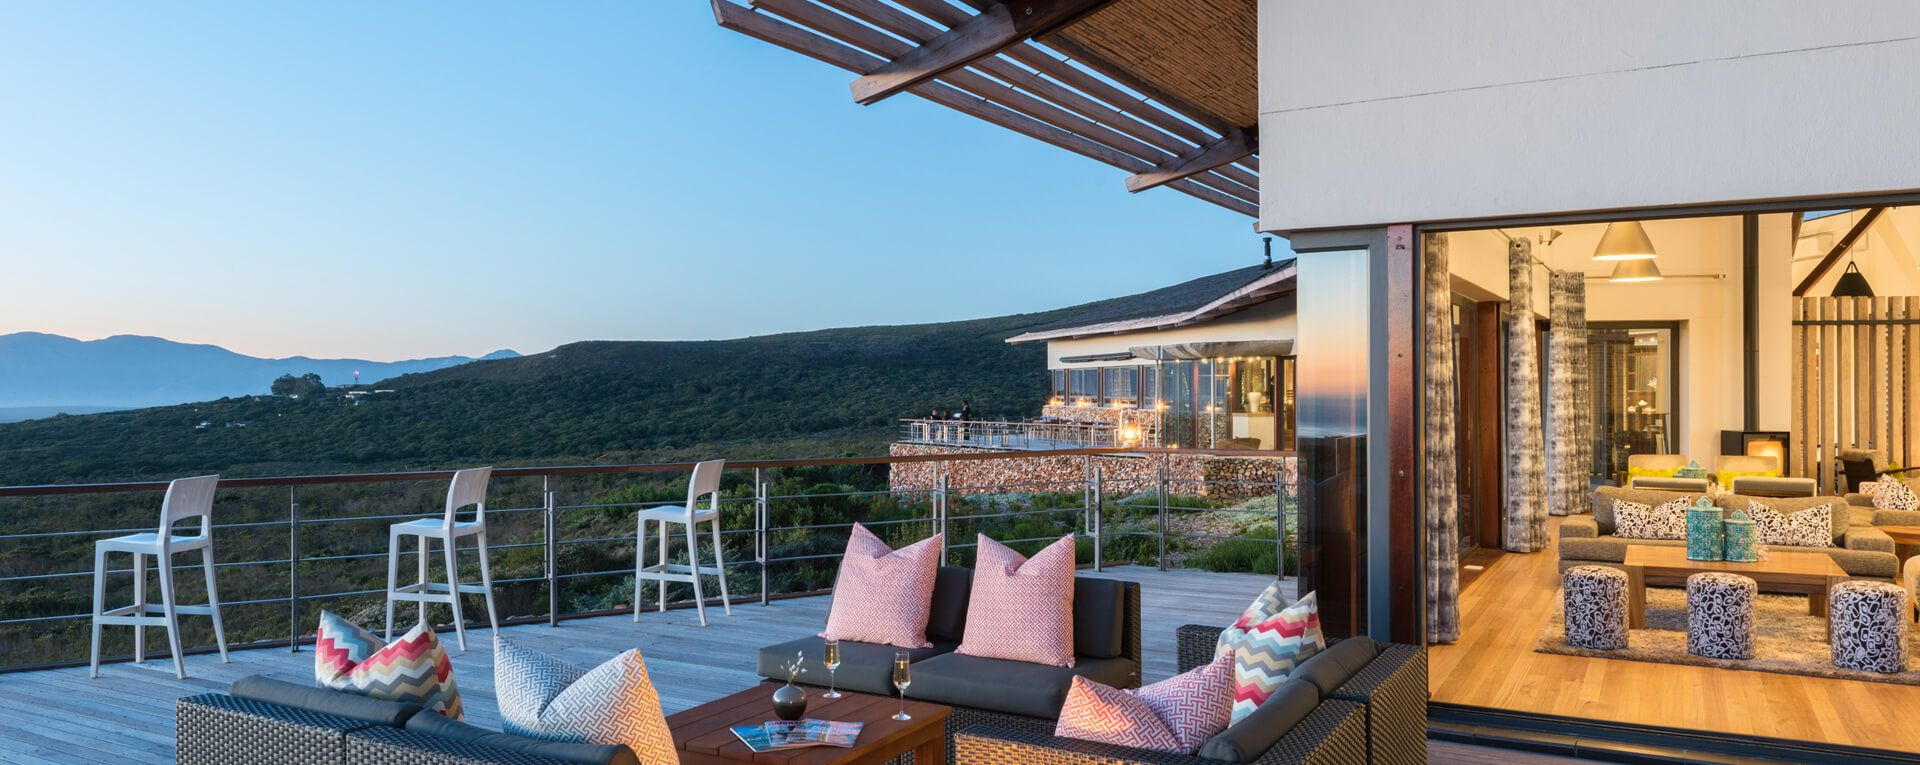 Grootbos Private Nature Reserve™